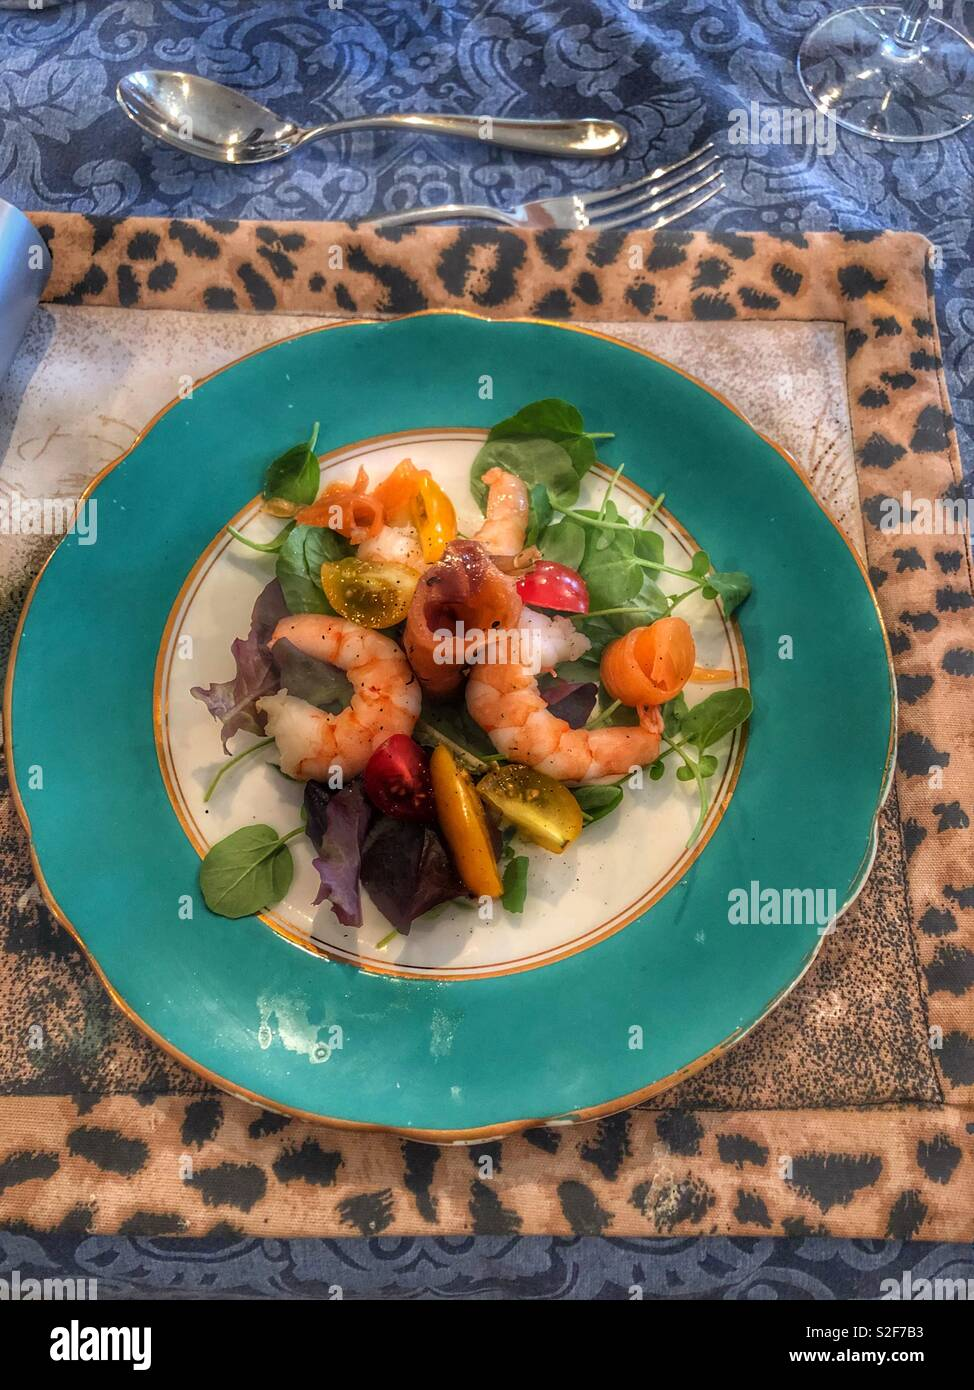 Prawn and smokes salmon salad appetiser on vintage jade plate with gold rim and leopard print place mat - Stock Image